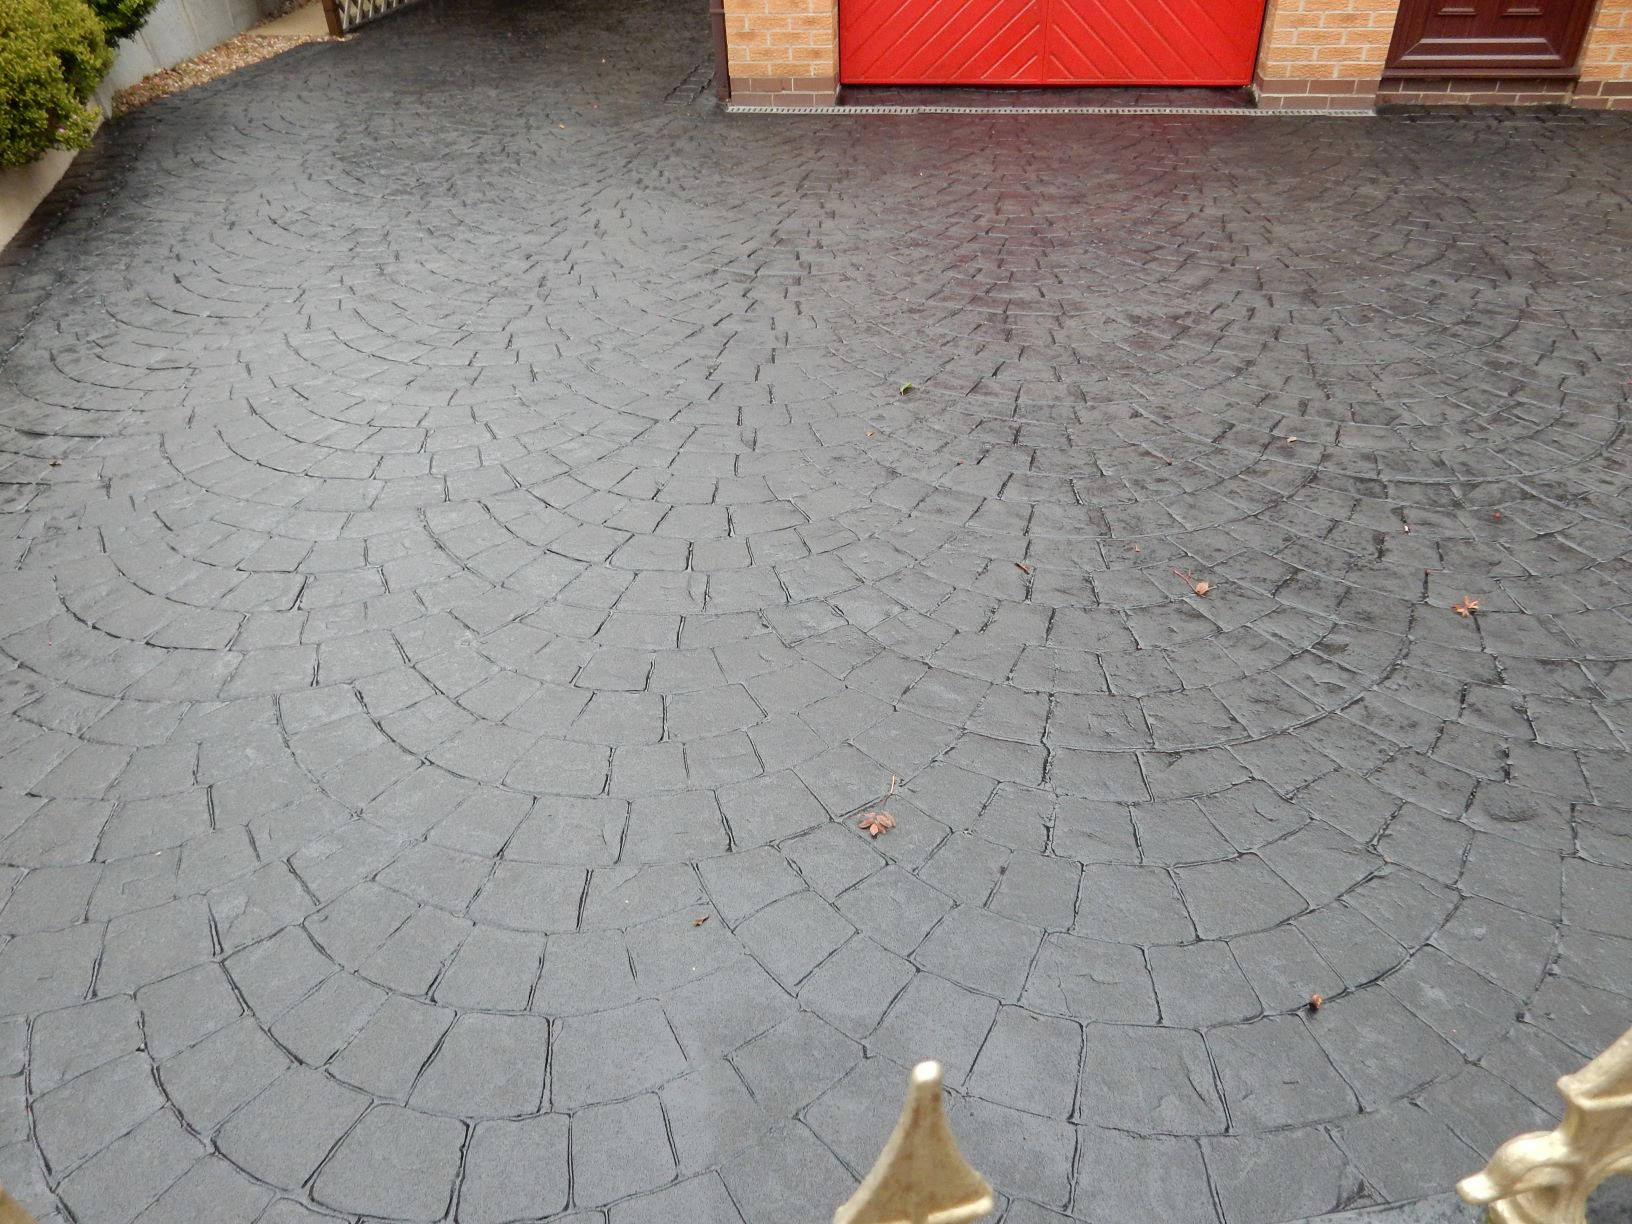 Patterned Concrete After Re-Tint and Seal